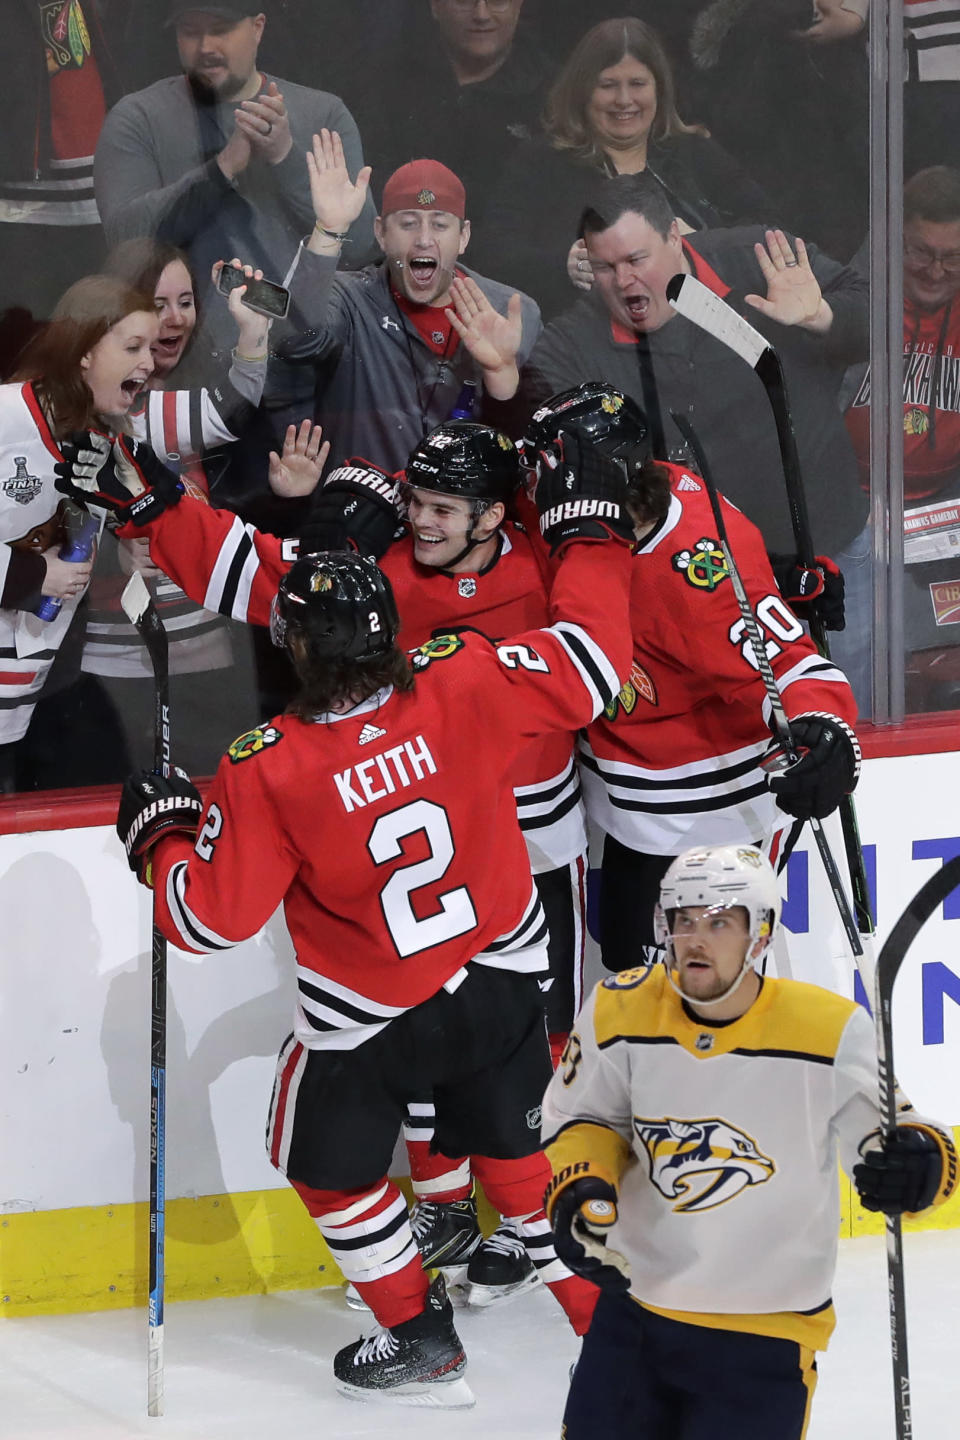 Chicago Blackhawks left wing Alex DeBrincat (12) celebrates with defenseman Duncan Keith (2) and left wing Brandon Saad after scoring the winning goal as Nashville Predators right wing Viktor Arvidsson reacts on the ice during the overtime period of an NHL hockey game in Chicago, Friday, Feb. 21, 2020. (AP Photo/Nam Y. Huh)